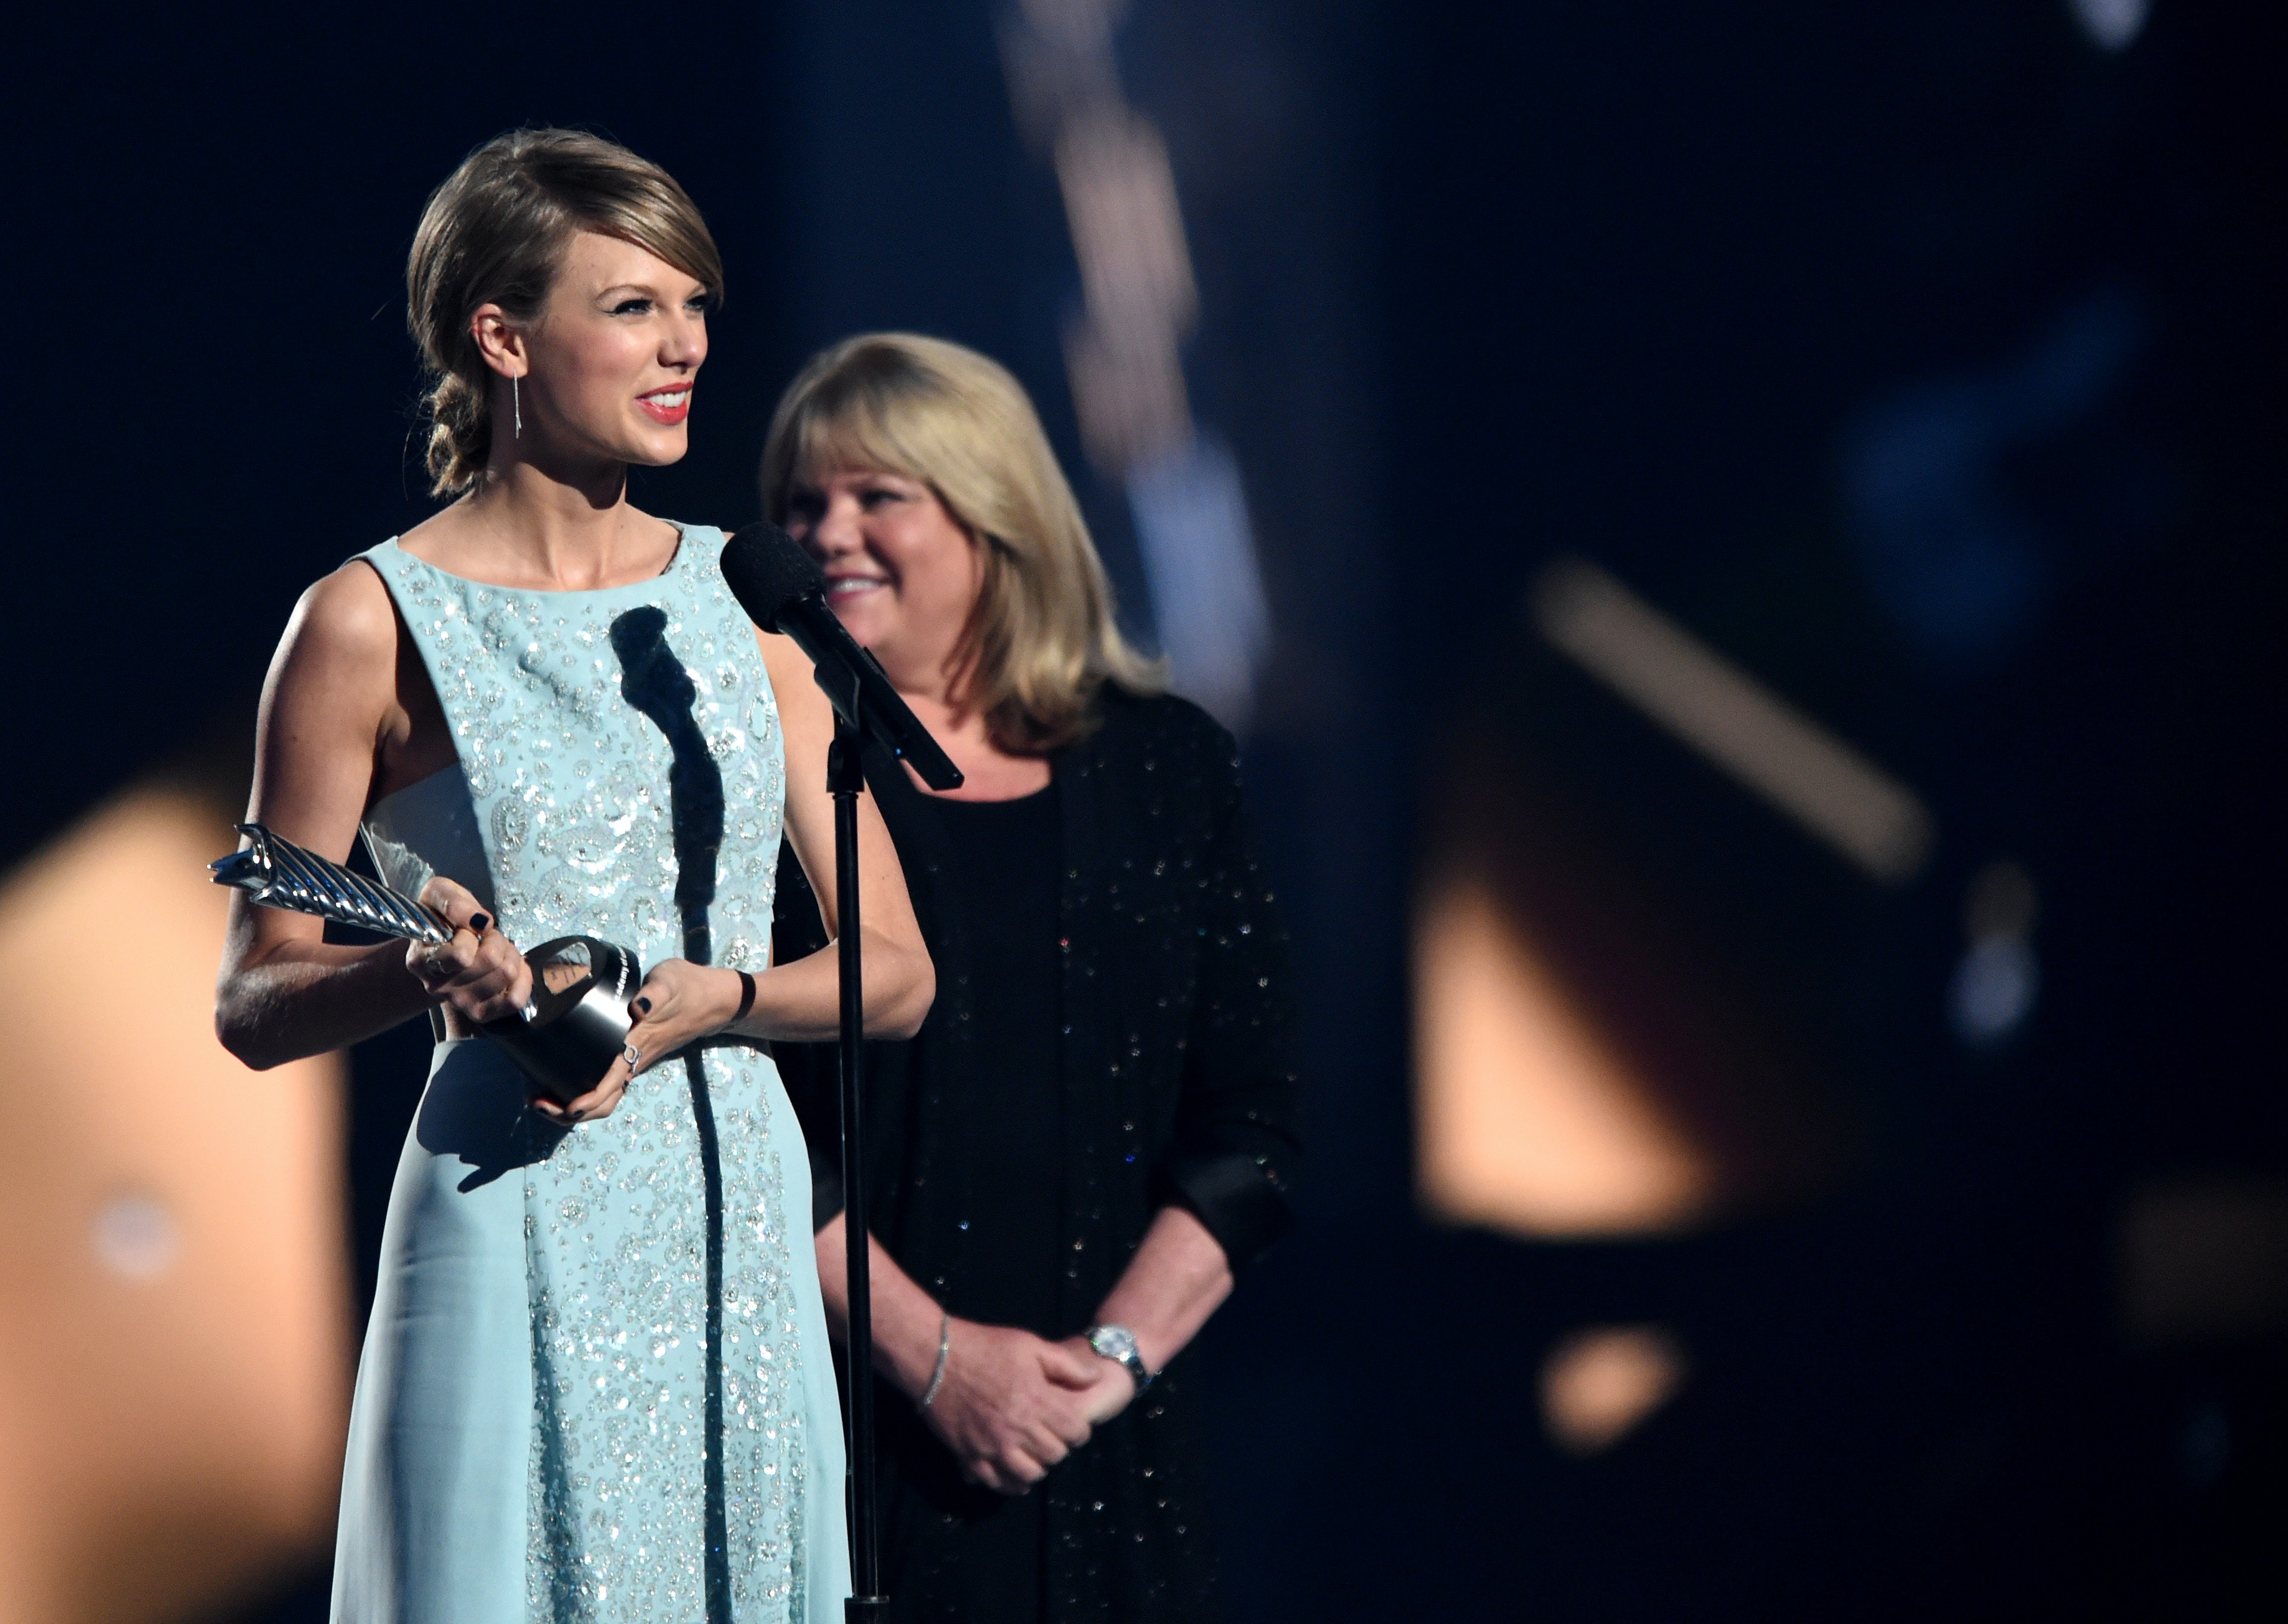 Taylor Swift S Mom S Testimony In The Singer S Alleged Assault Trial Is Heart Wrenching To Read